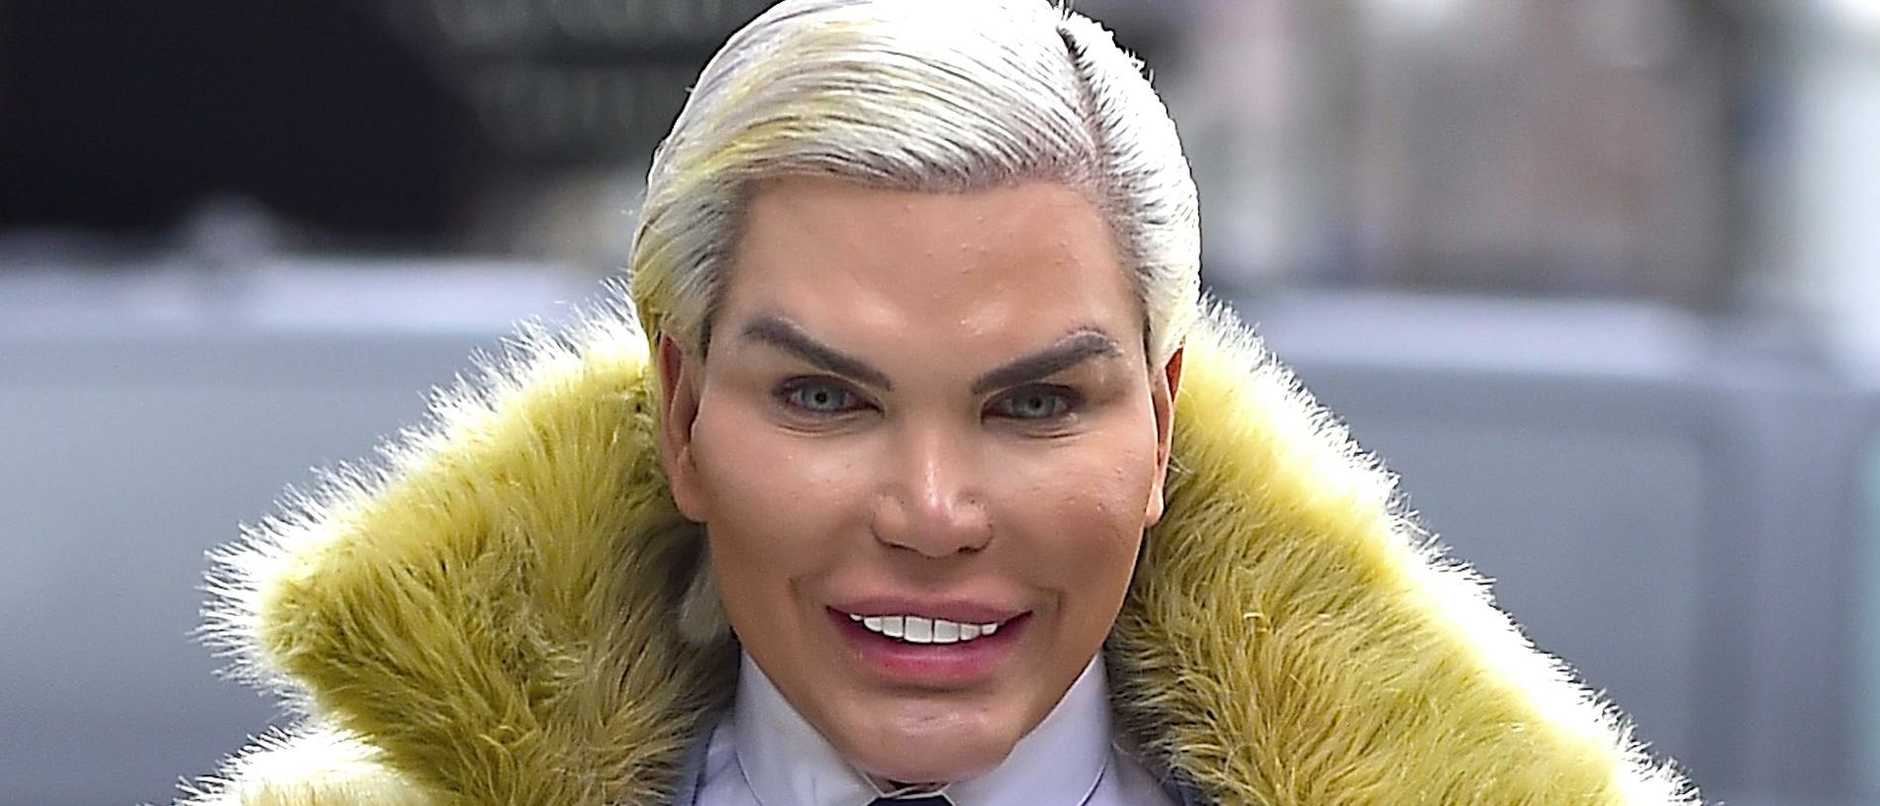 Roddy Alves, was once known as the 'Human Ken Doll' after spending $1 million on surgeries. Now Alves' famous face looks very different.